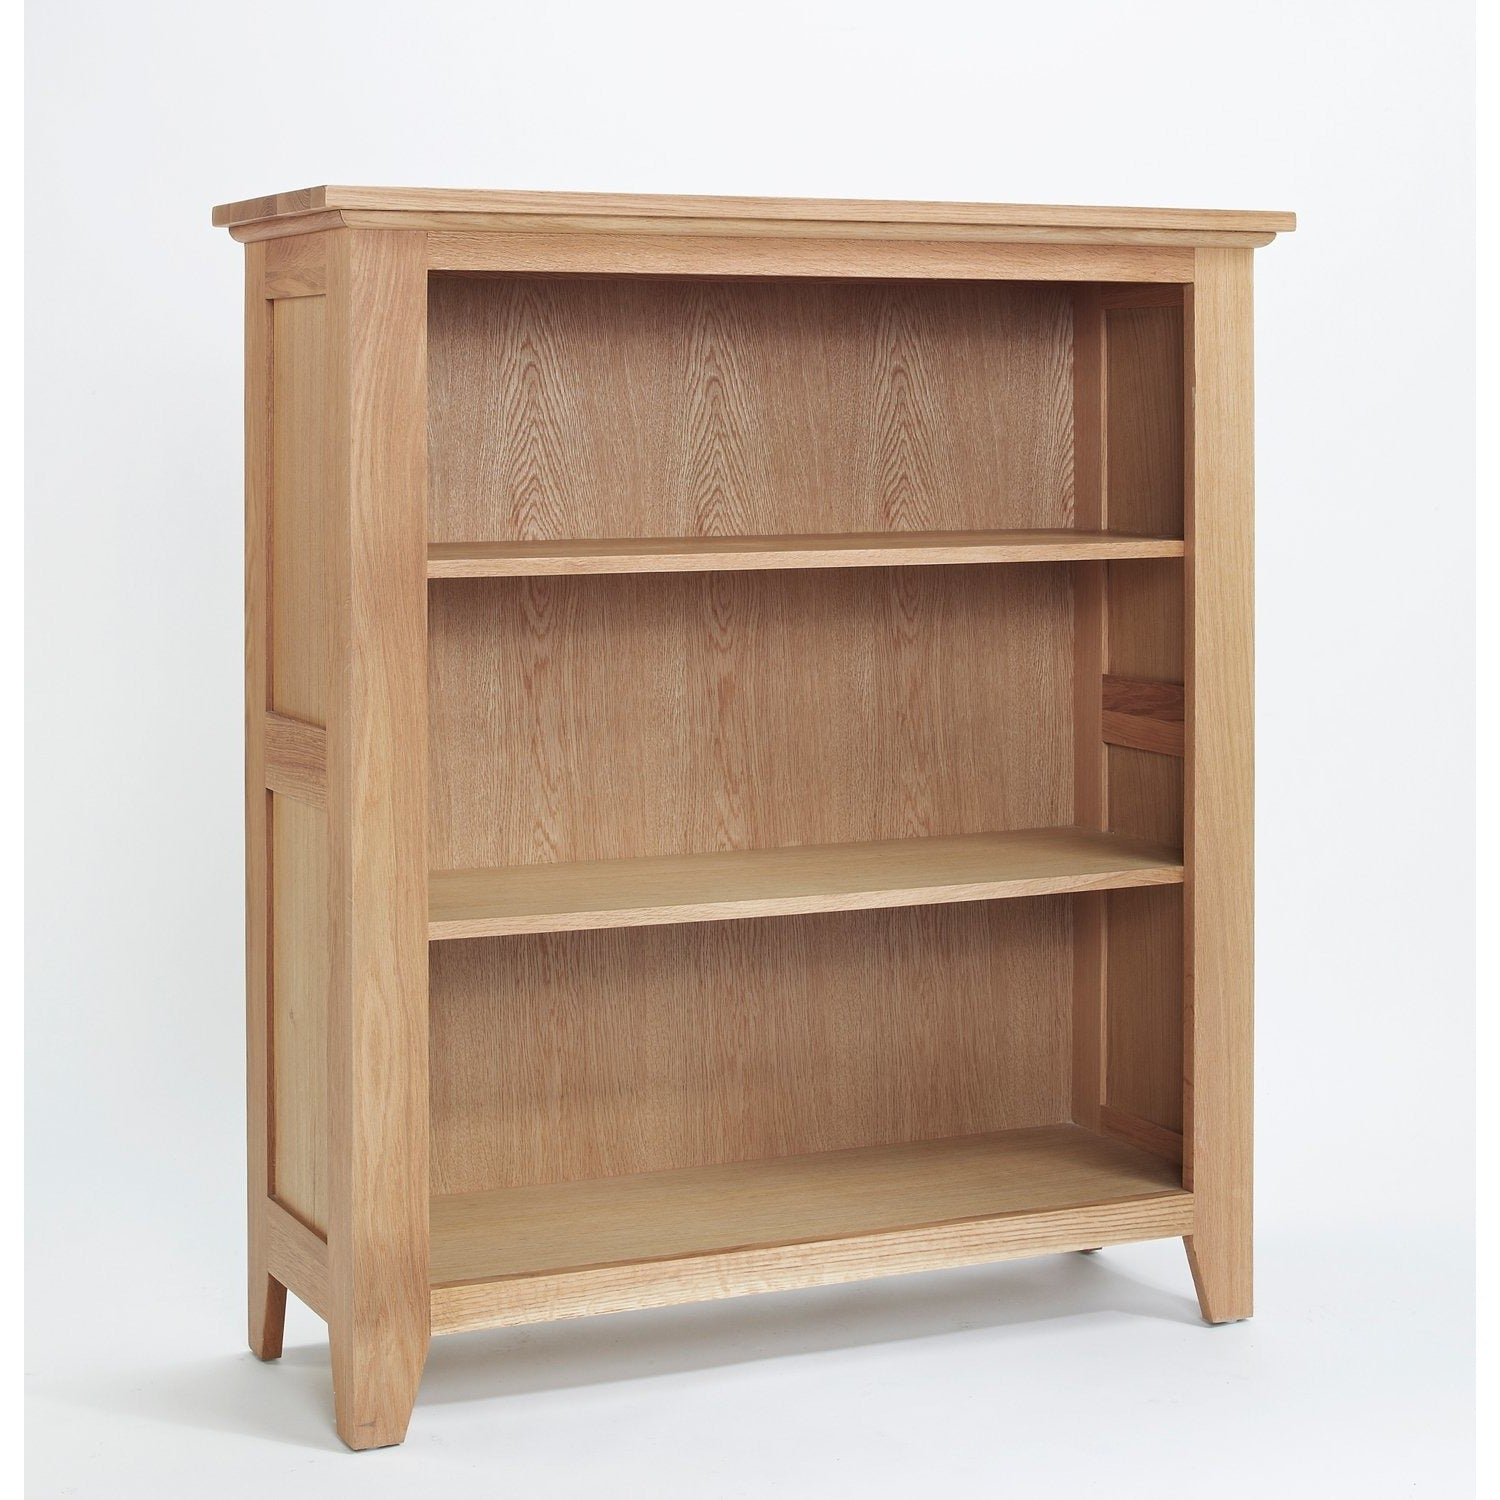 Sherwood Oak Low Bookcase - Perfectly Home Interiors